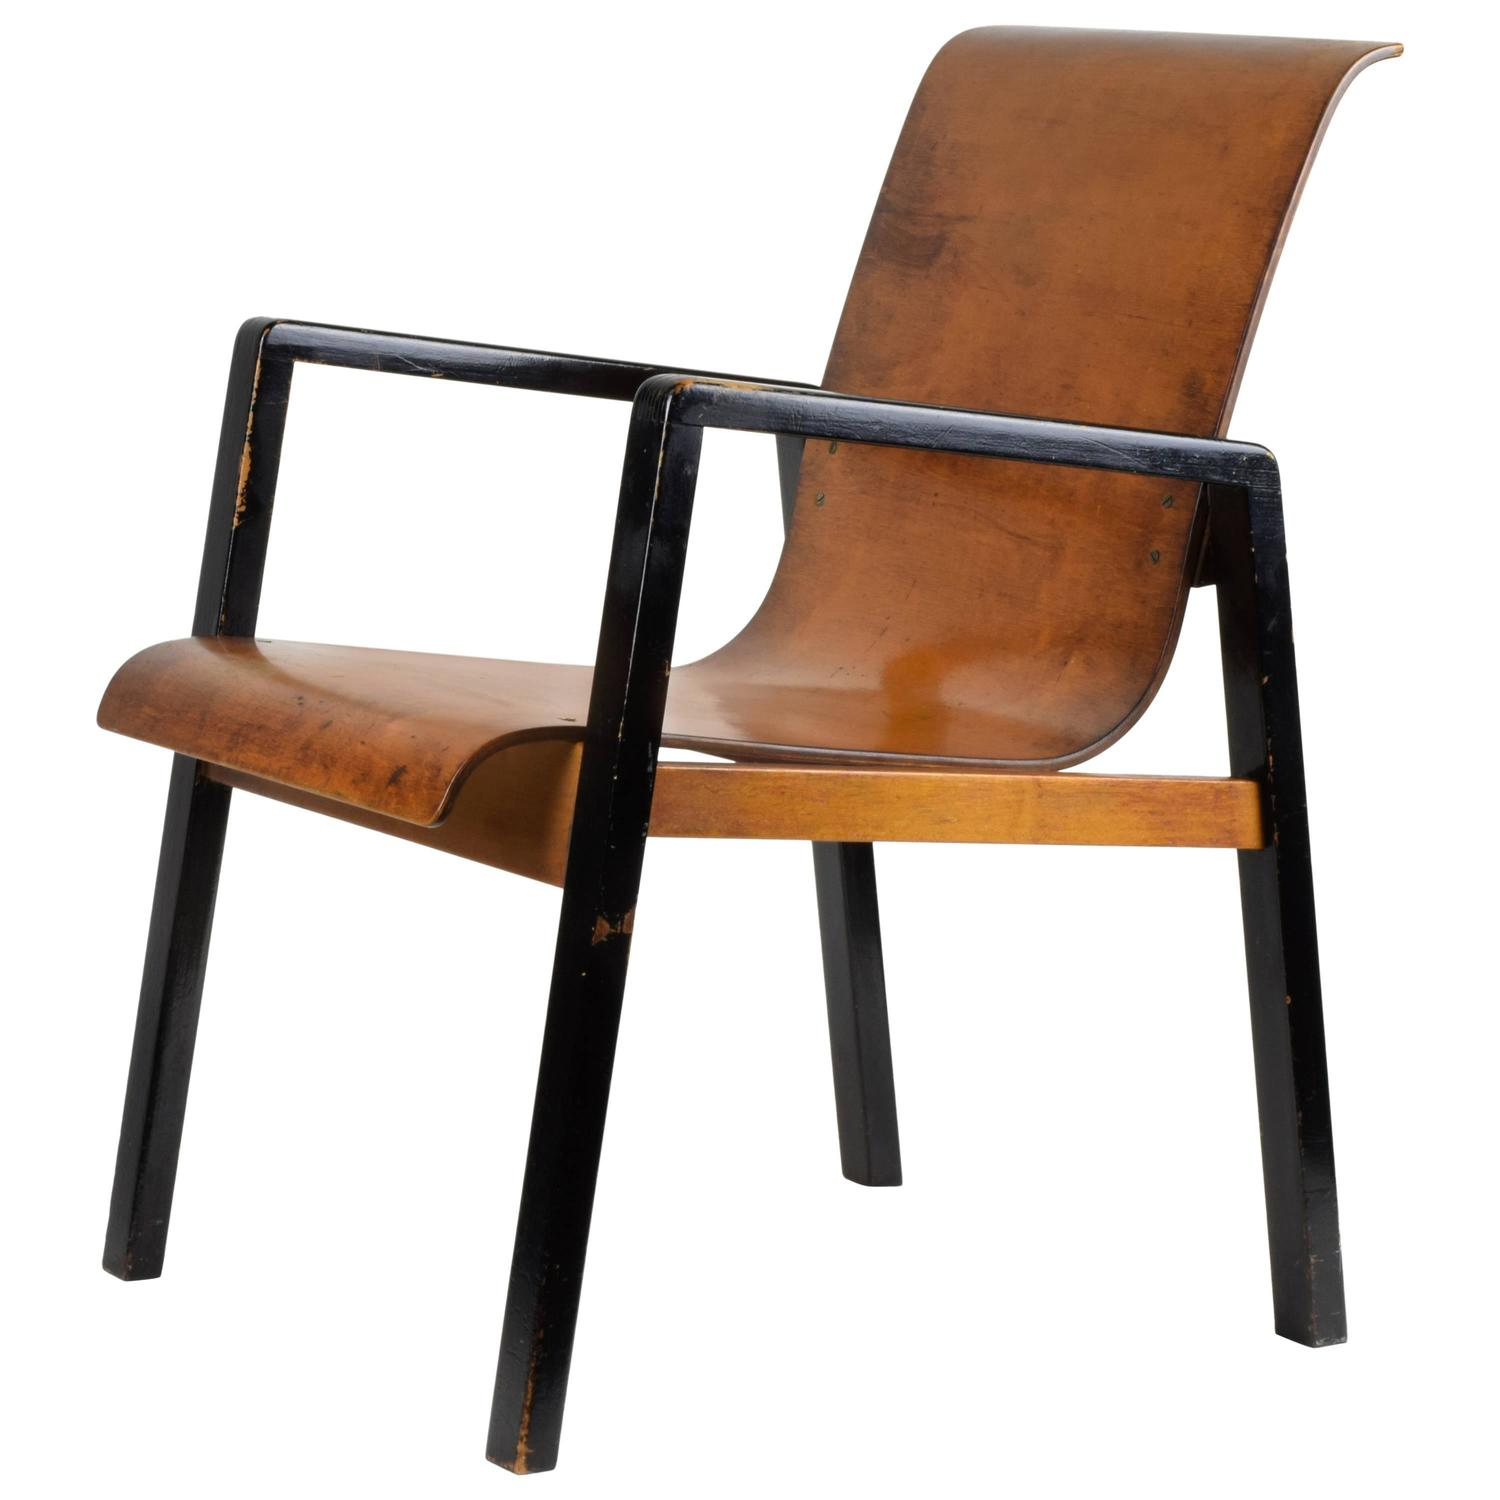 Alvar Aalto, Armchair Model 51, 1932 At 1stdibs